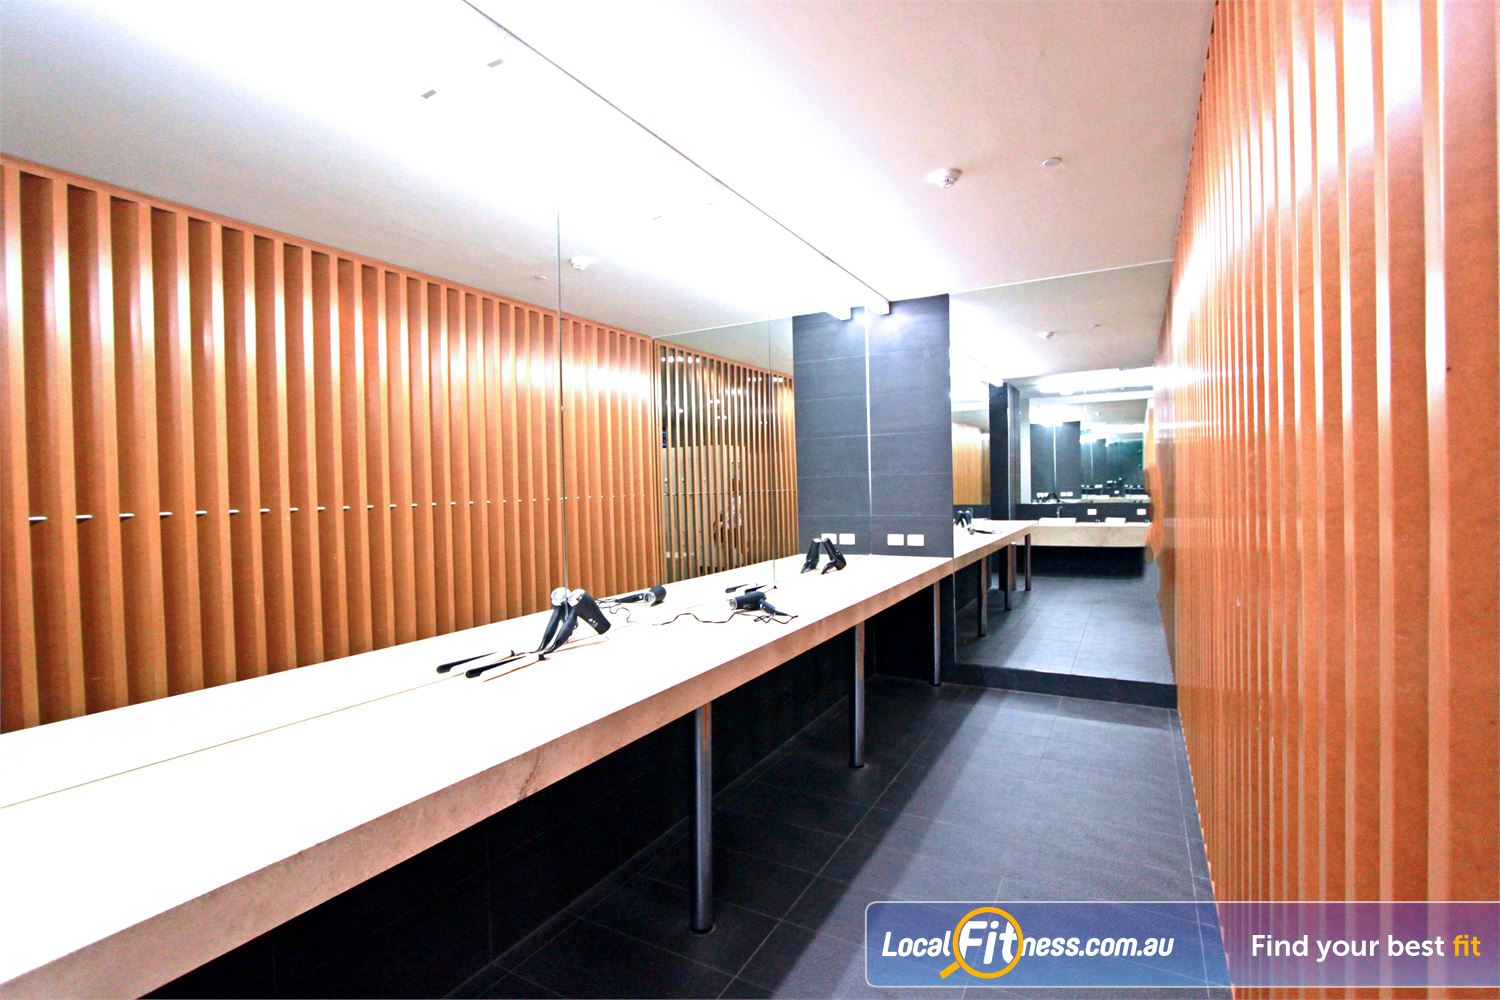 South Pacific Health Clubs Melbourne Professional grooming facilities including hair dryers and hair straighteners.